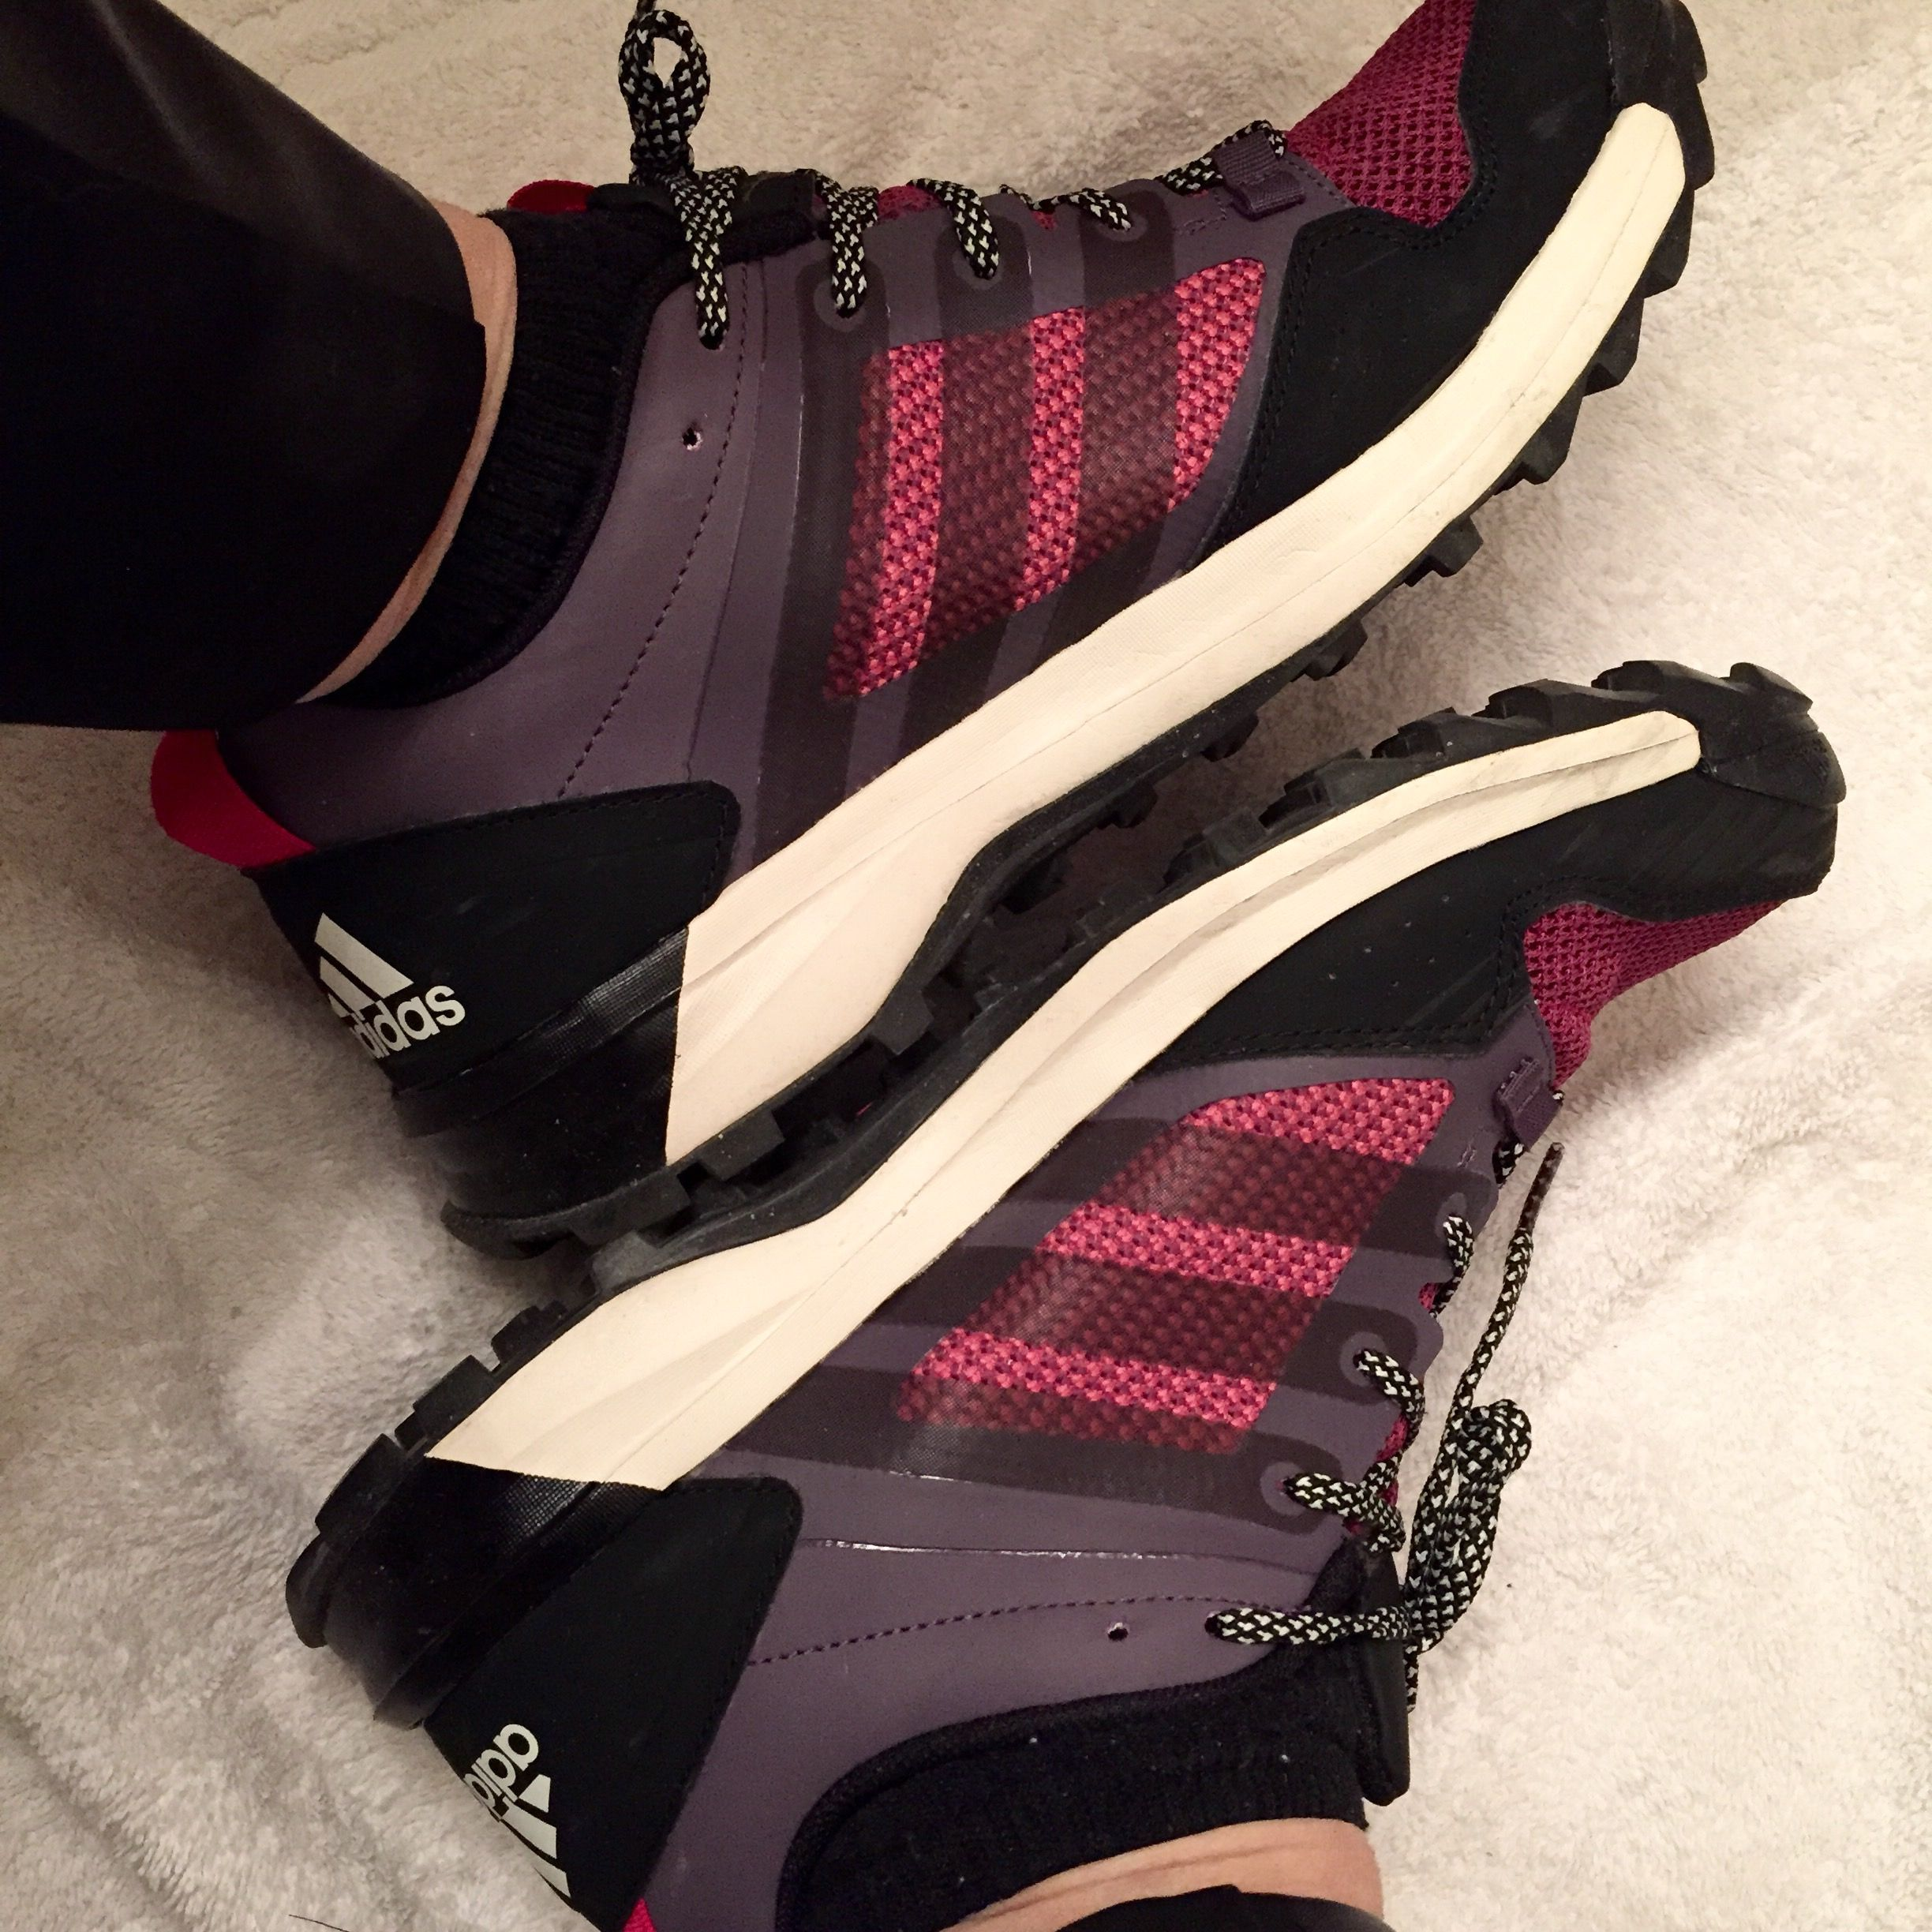 My new Christmas shoes from Costco $29.99 Purple magenta Adidas